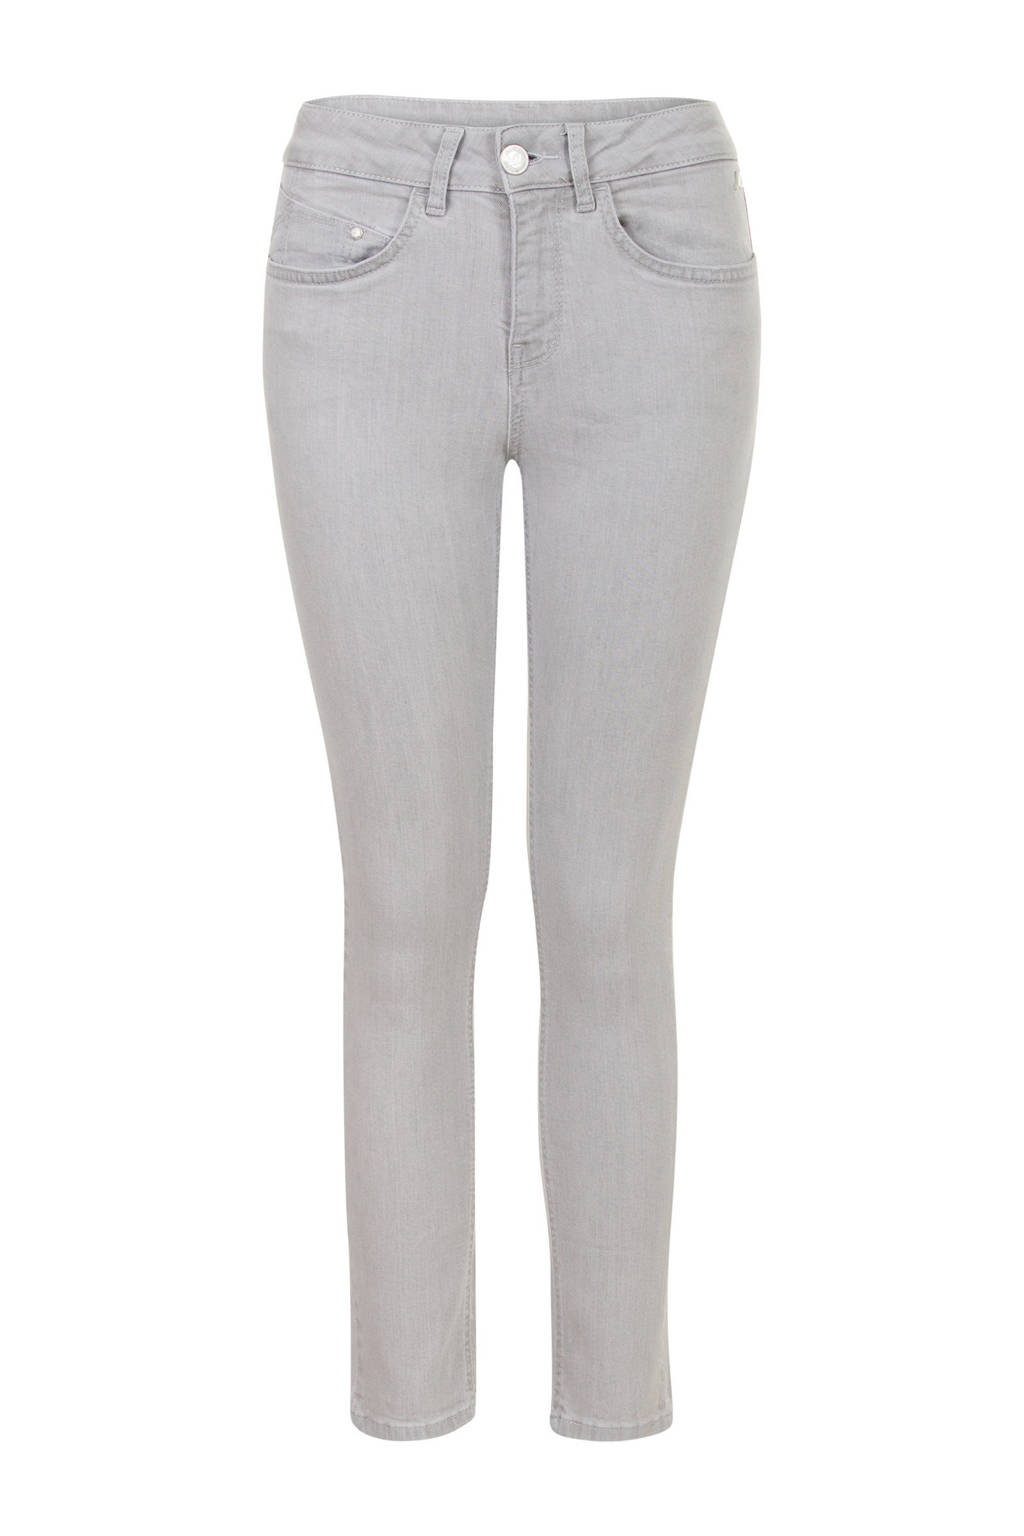 Miss Etam Regulier slim fit jeans grijs, Grijs